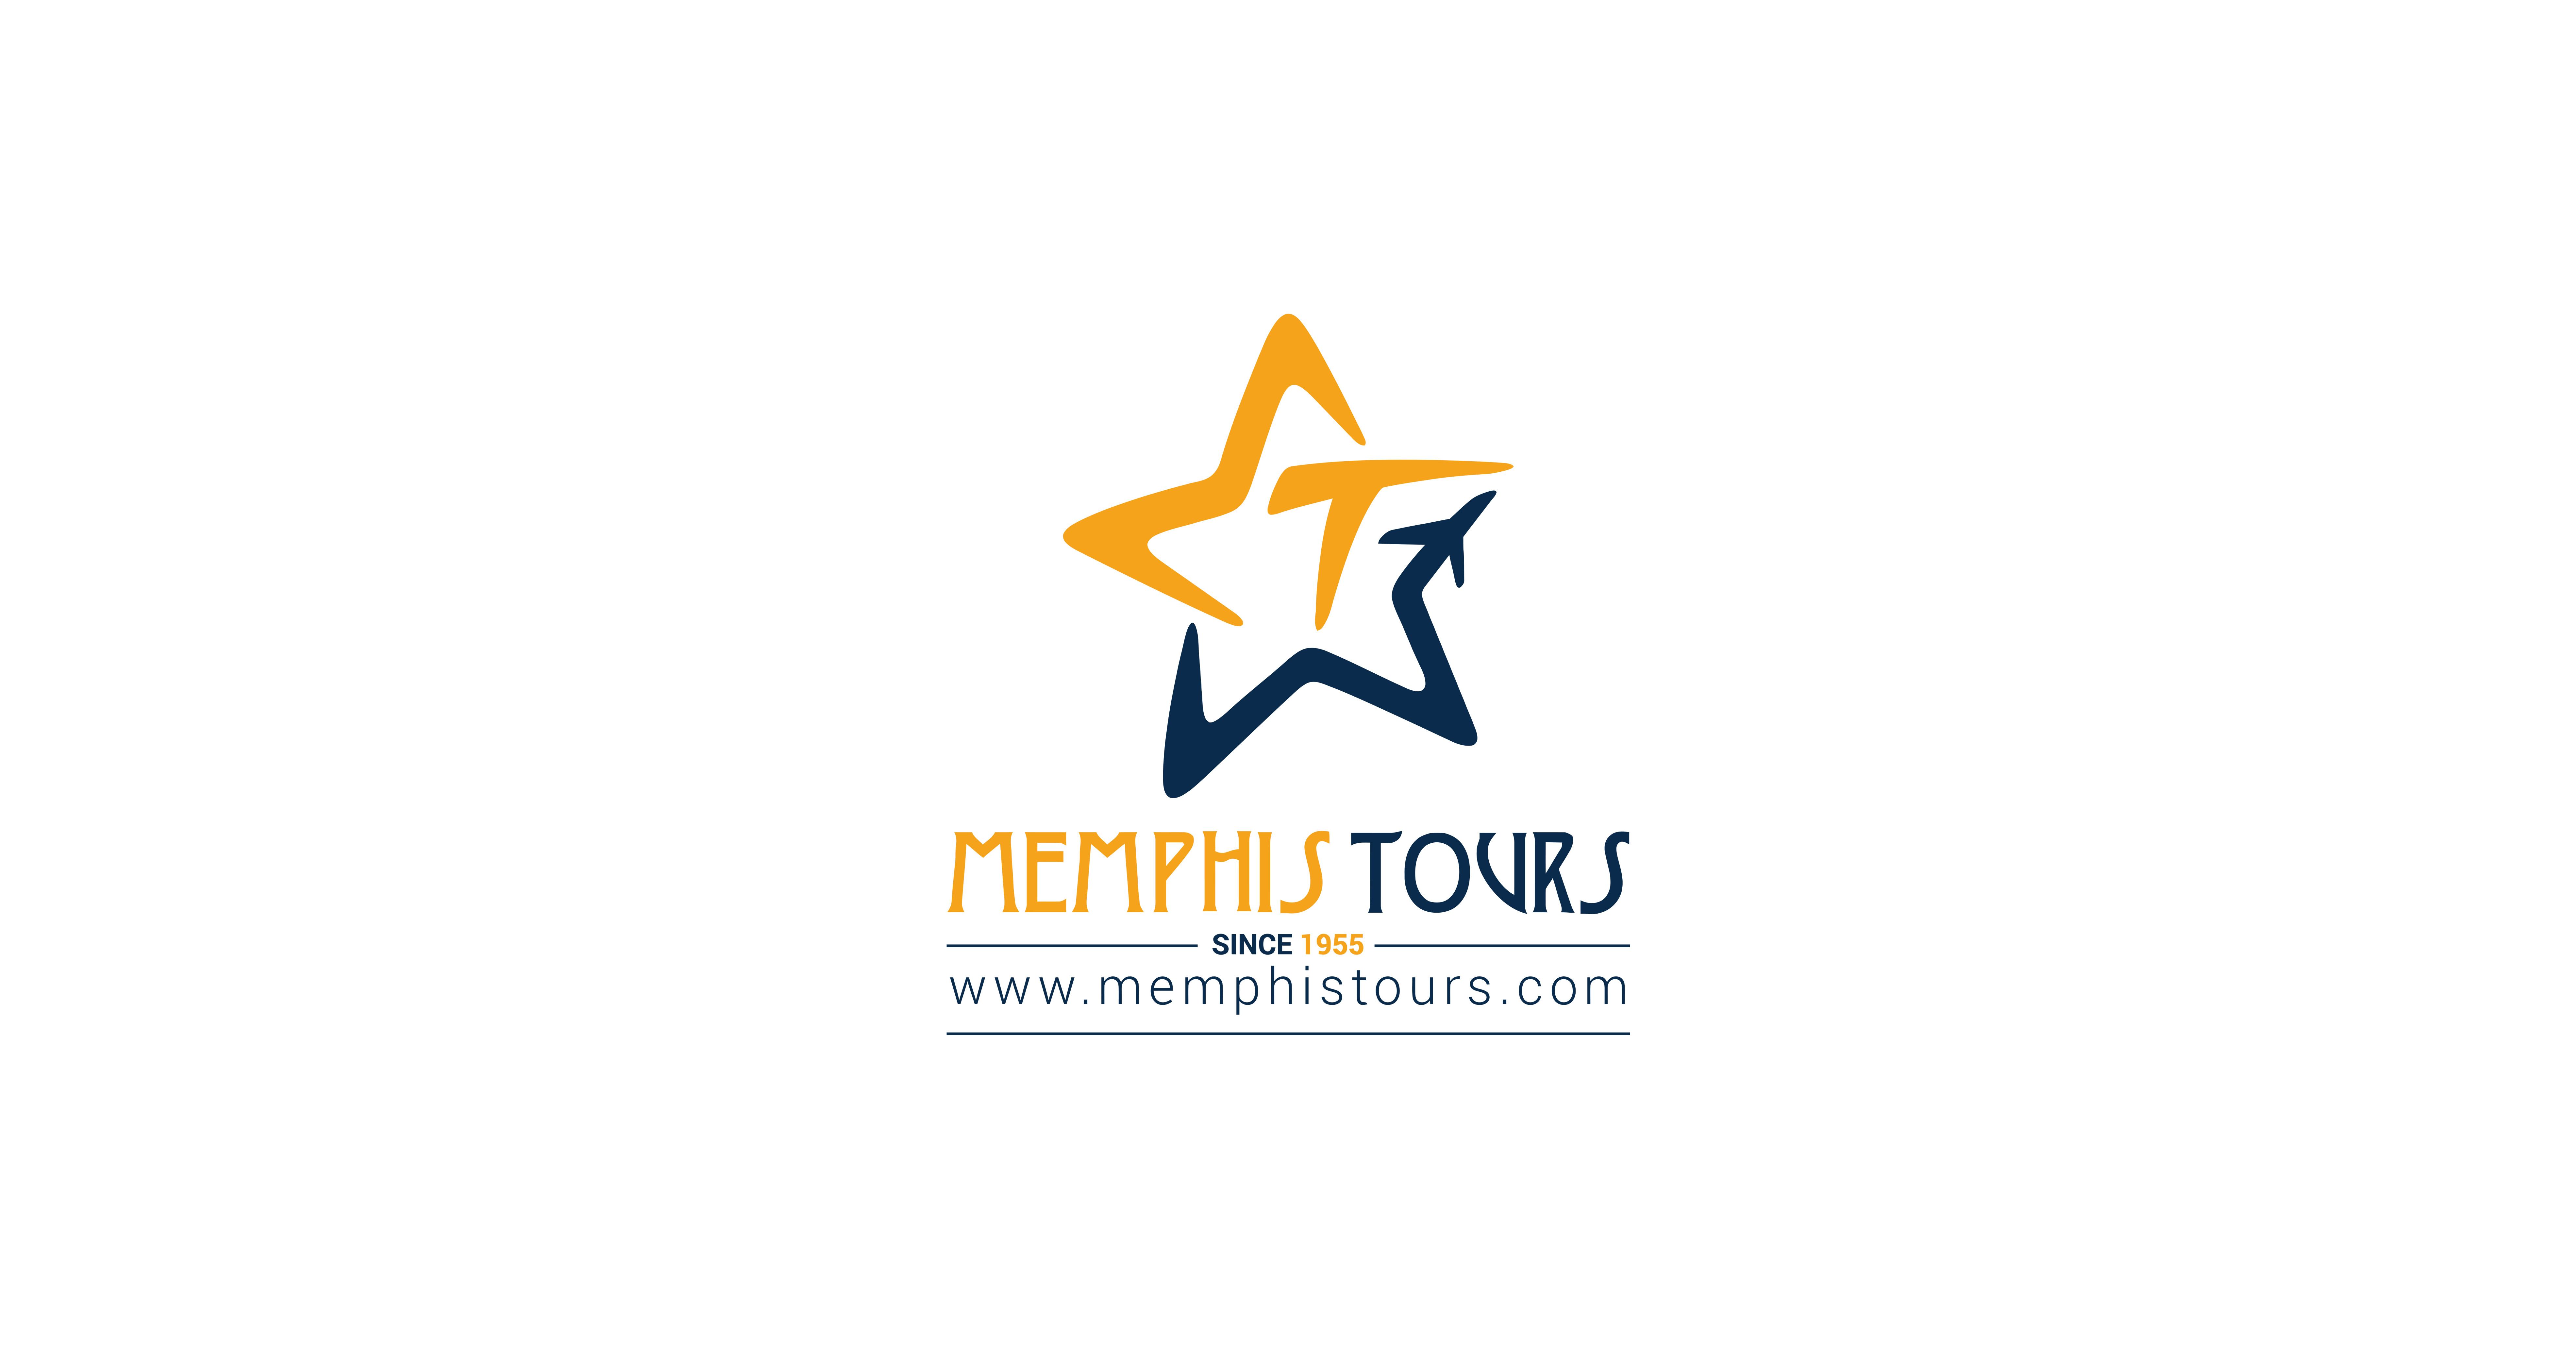 Astounding Jobs And Careers At Memphis Tours Egypt Wuzzuf Home Interior And Landscaping Ologienasavecom